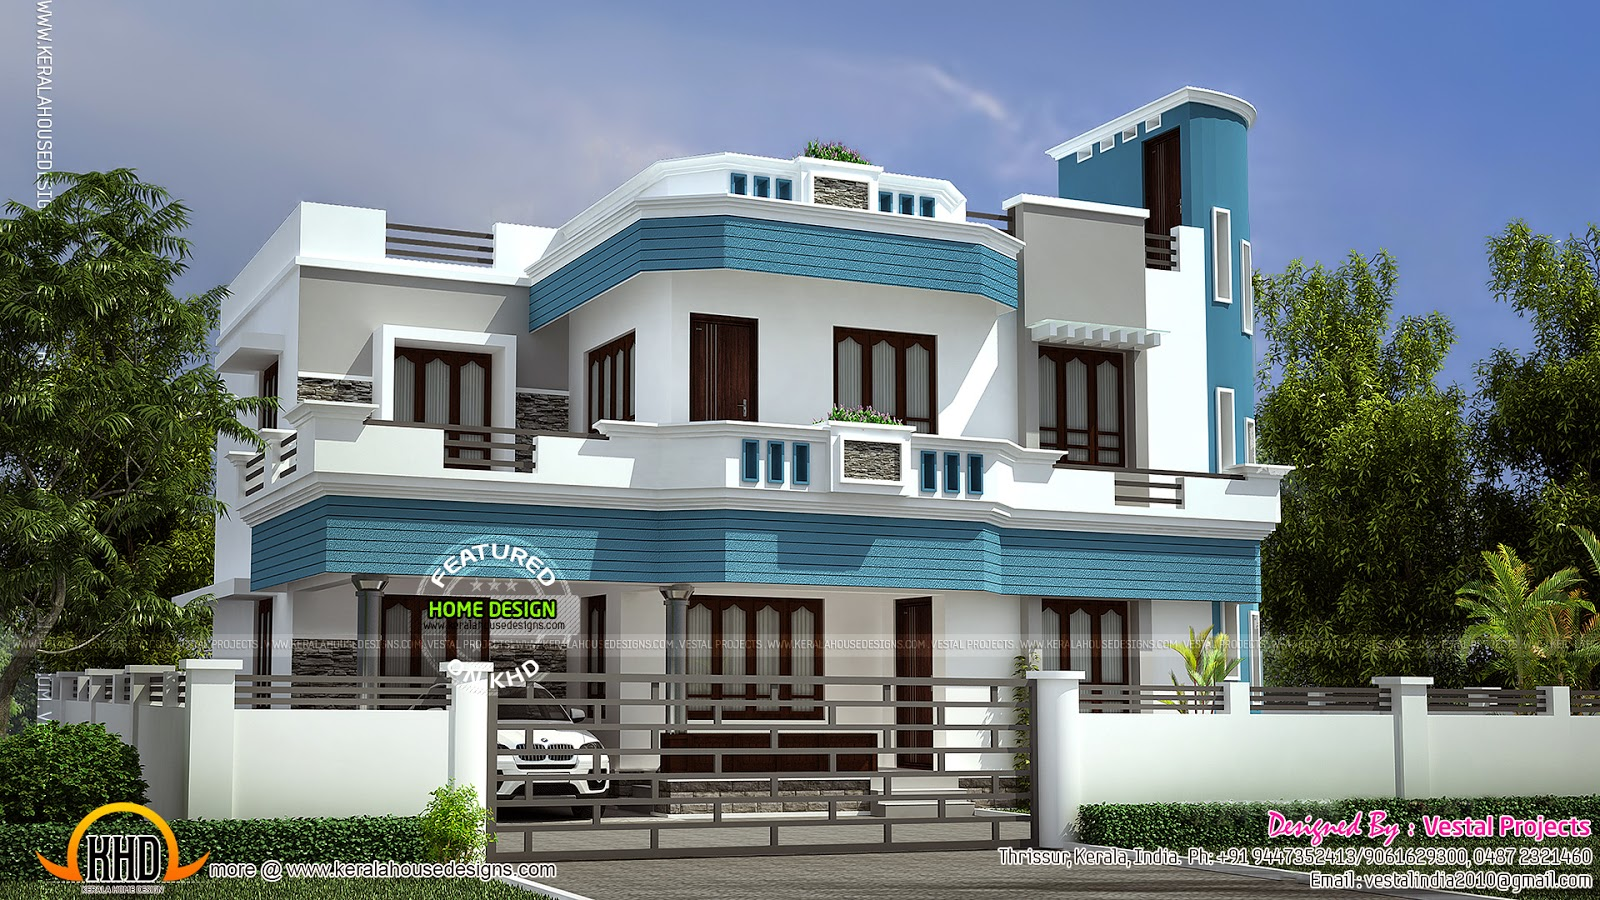 Low cost contemporary house designs in kerala kerala house for House designs